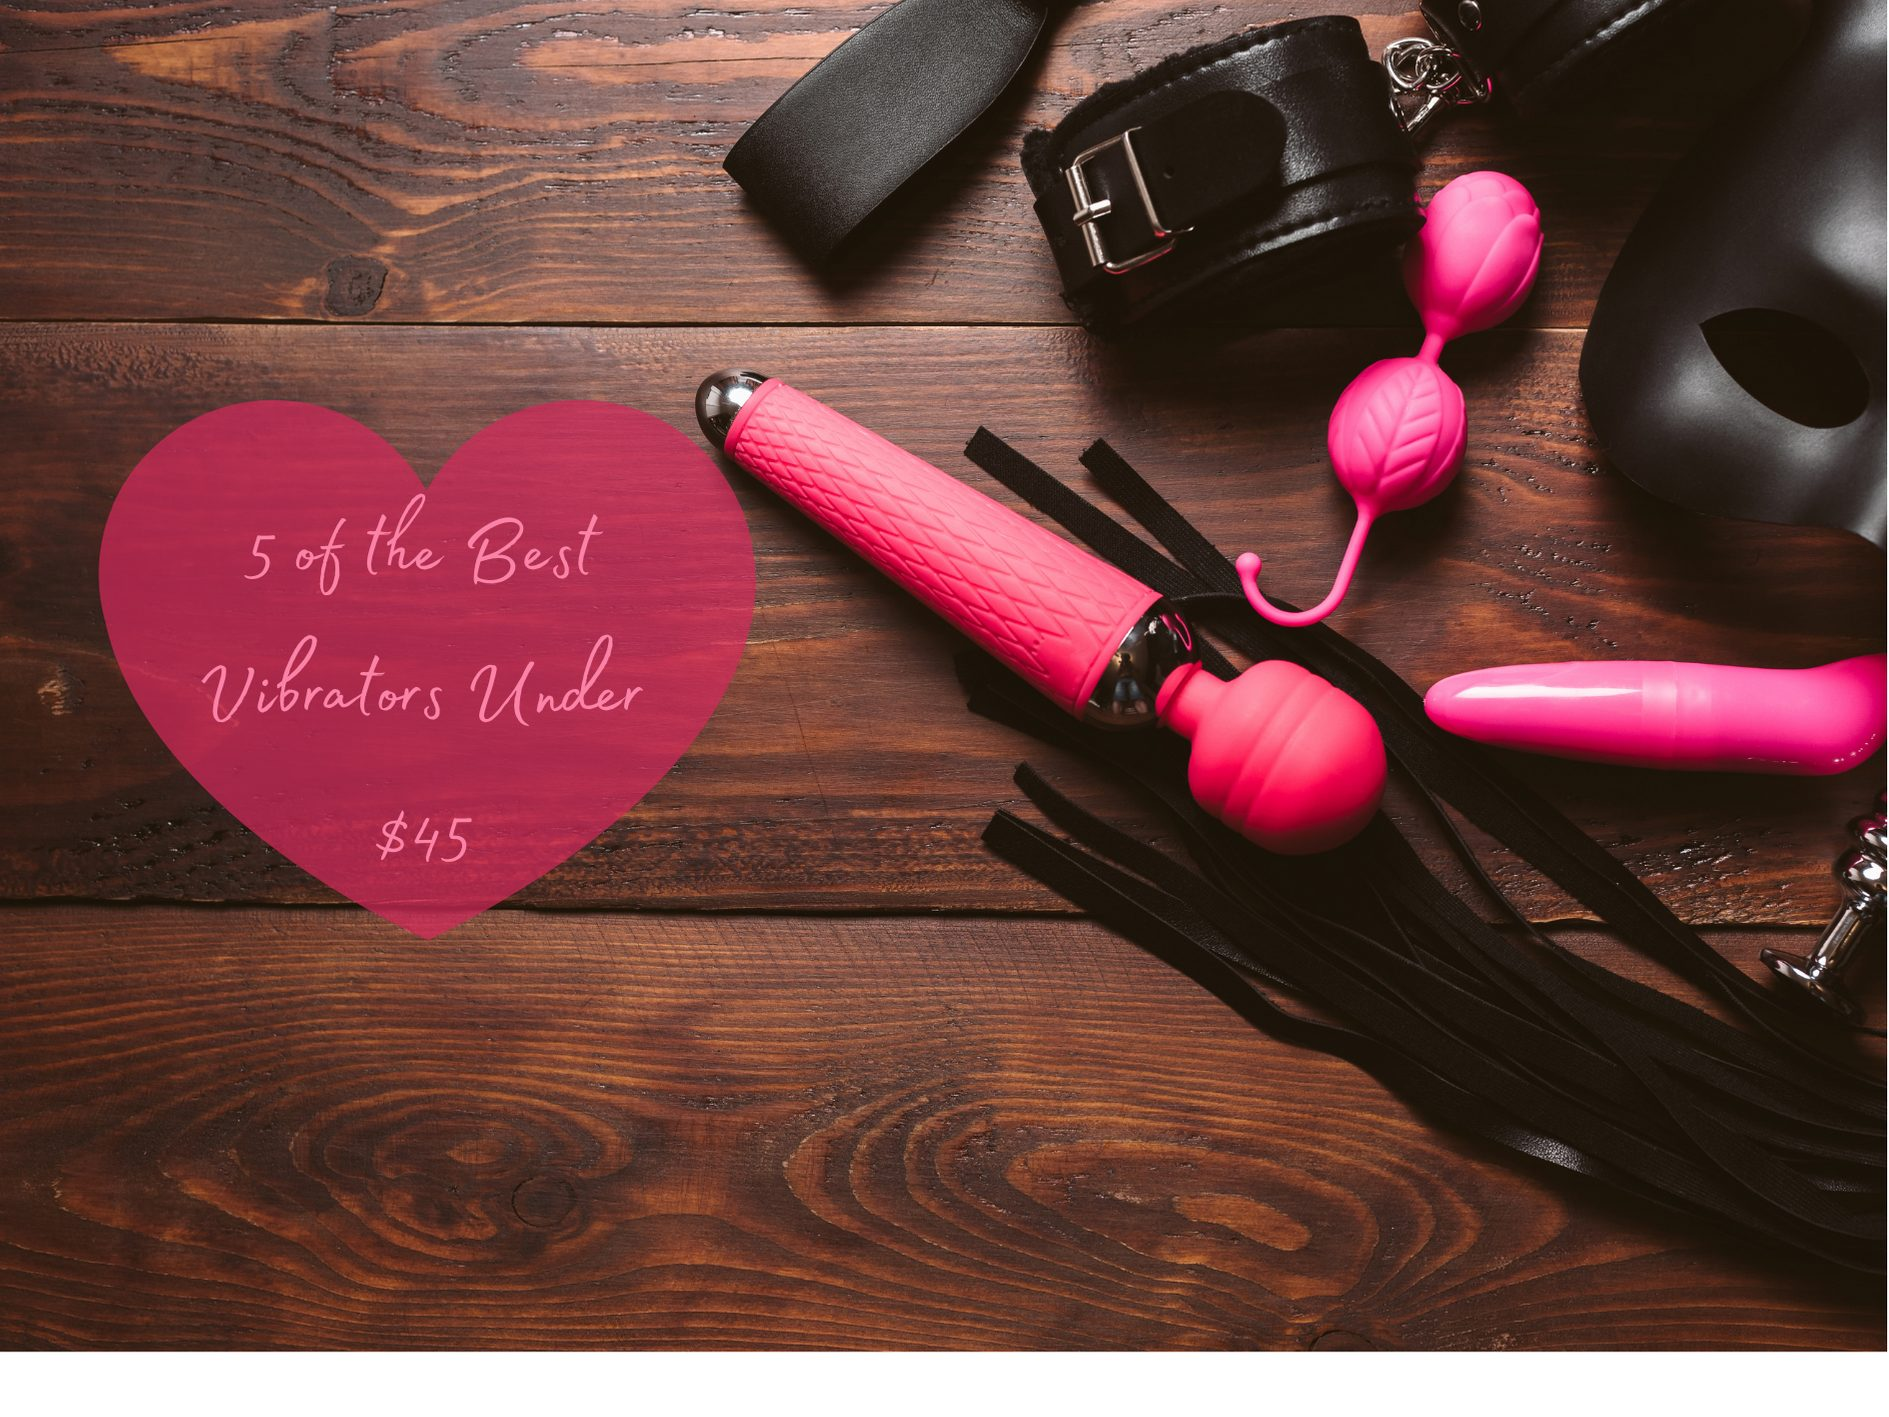 5 Best Vibrators Under $45 (North American edition)